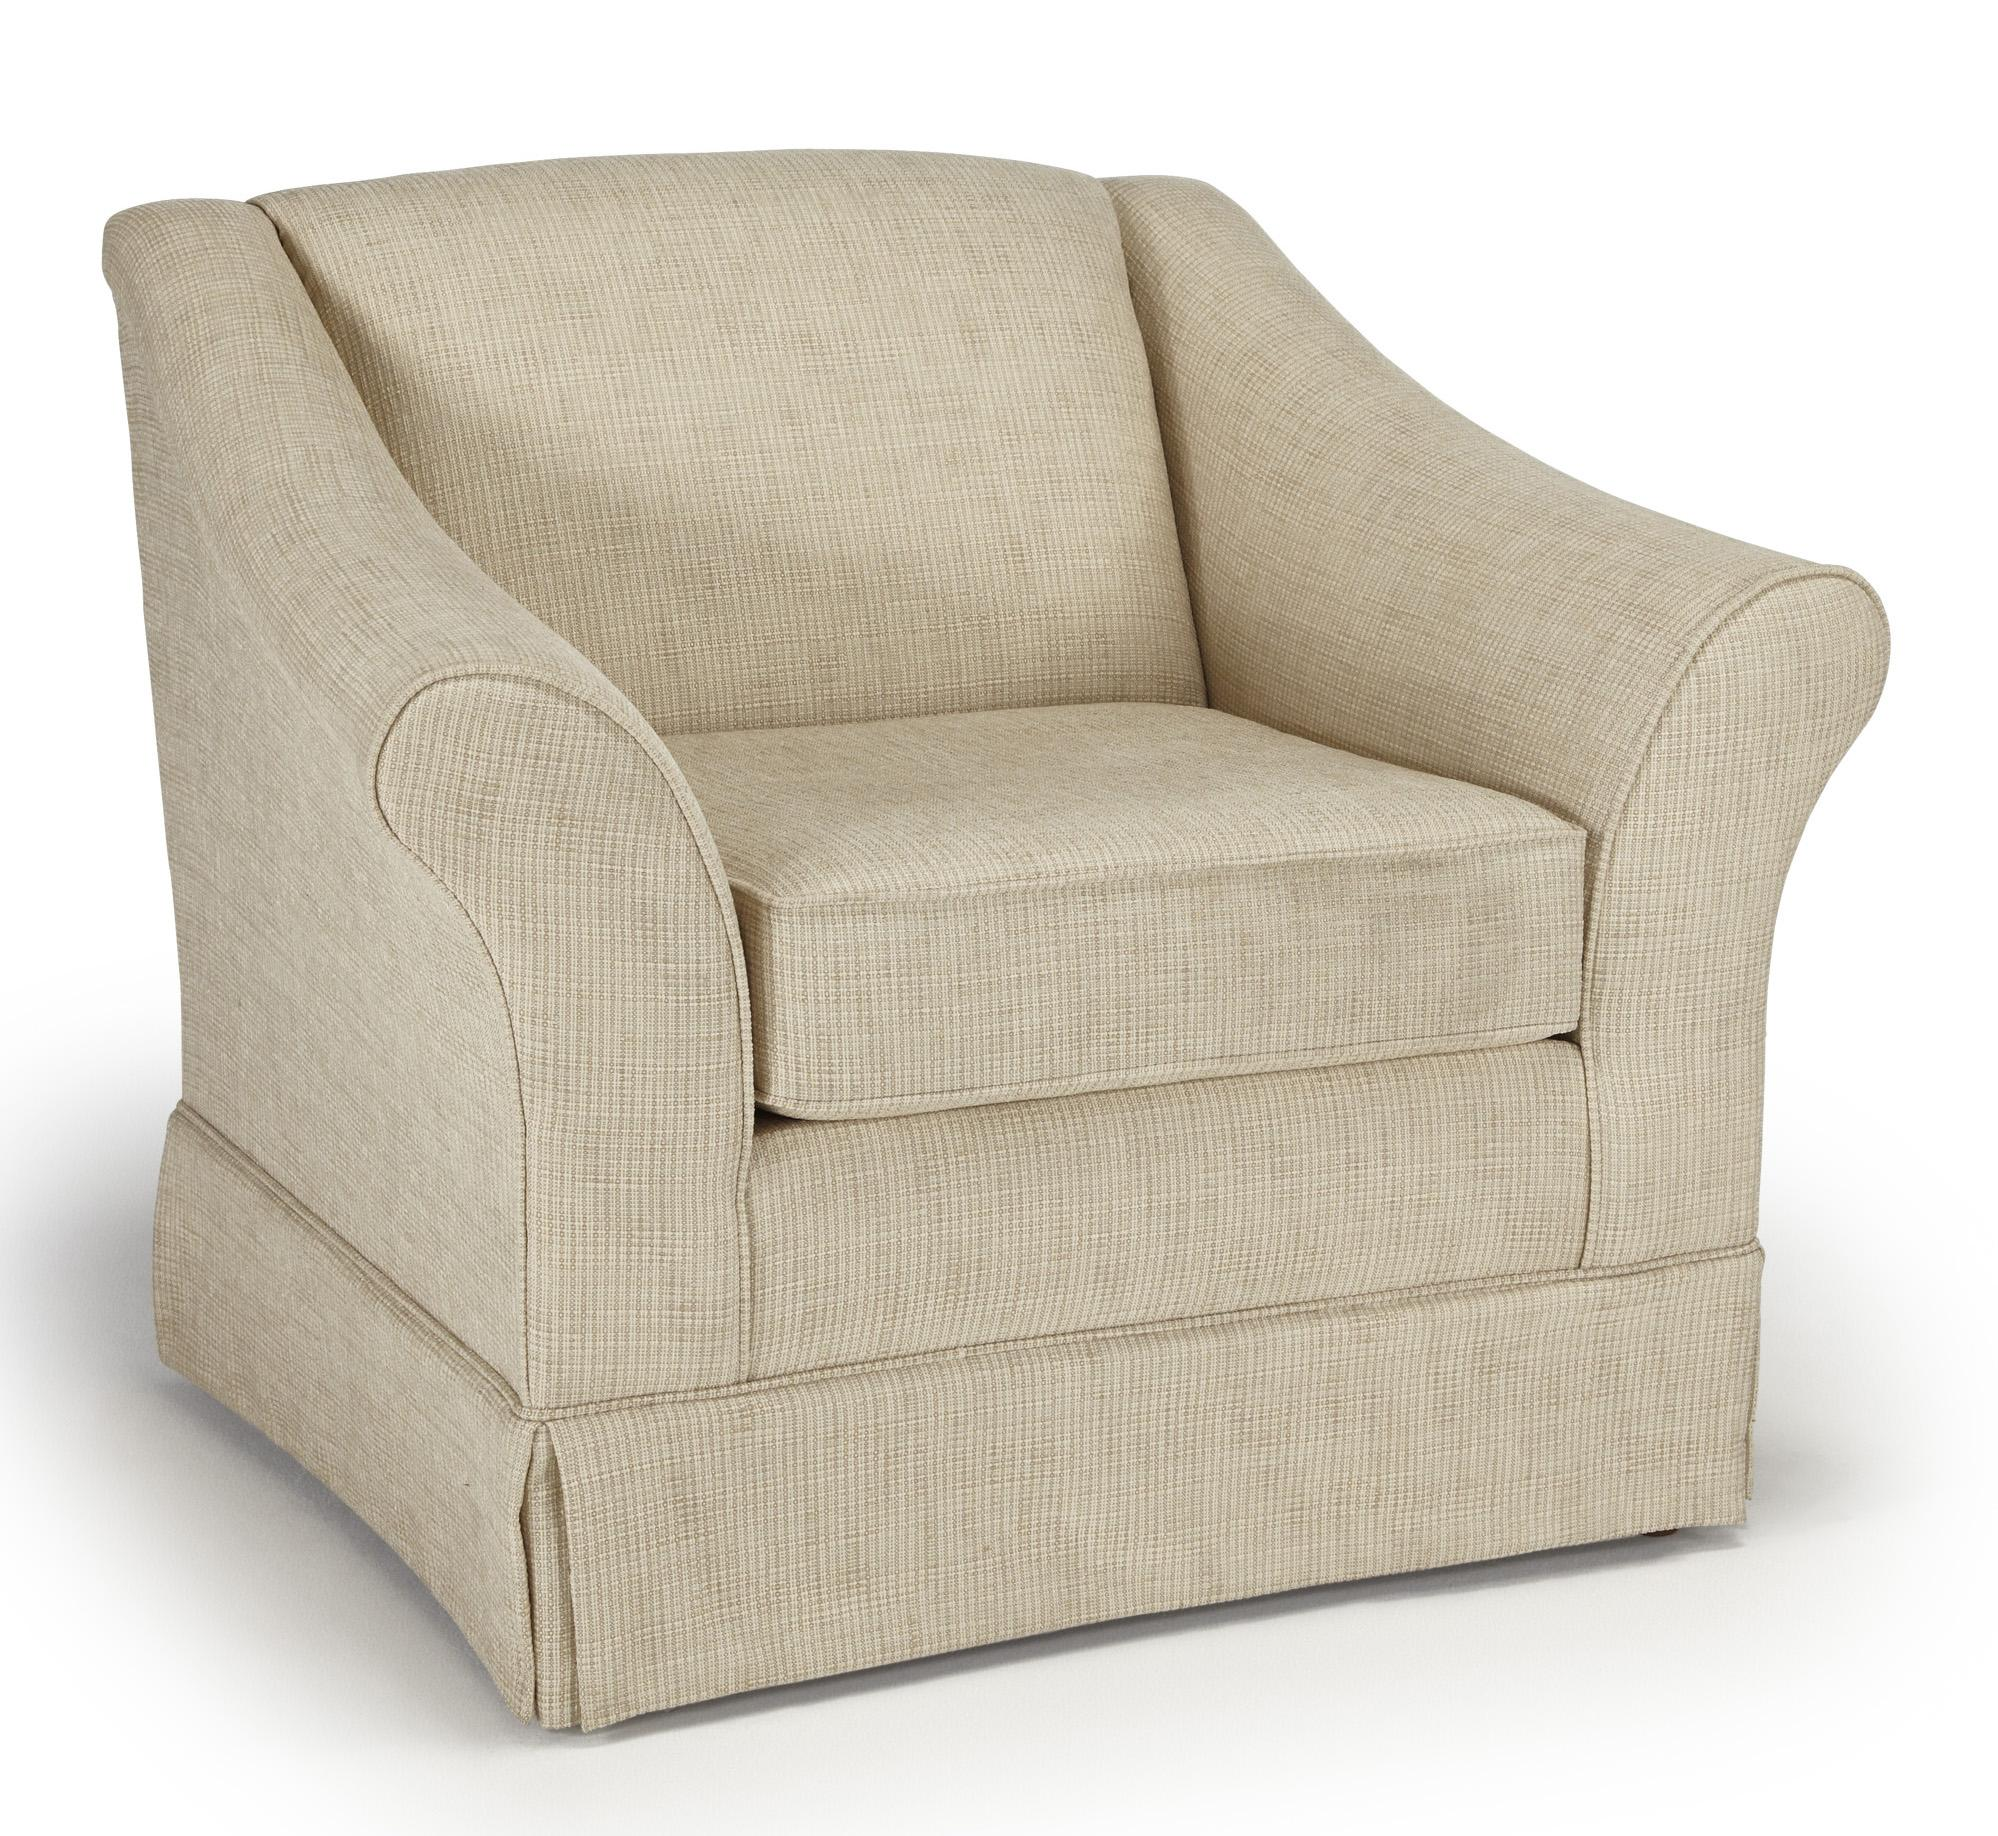 Best Home Furnishings Emeline Custom Chair - Item Number: C9XX